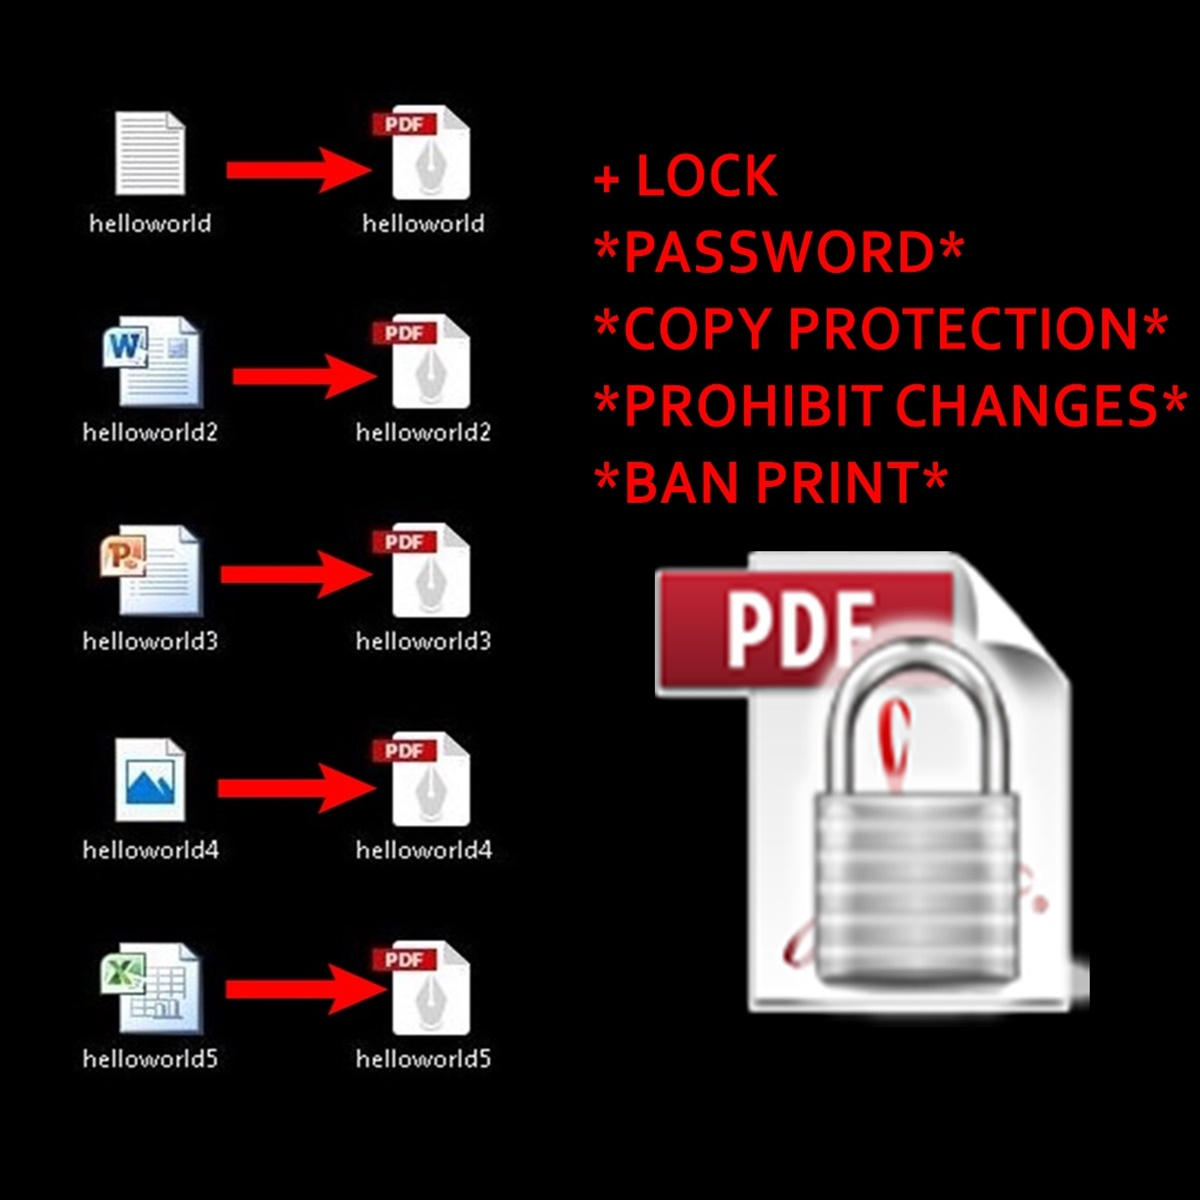 covert your documents to PDF!